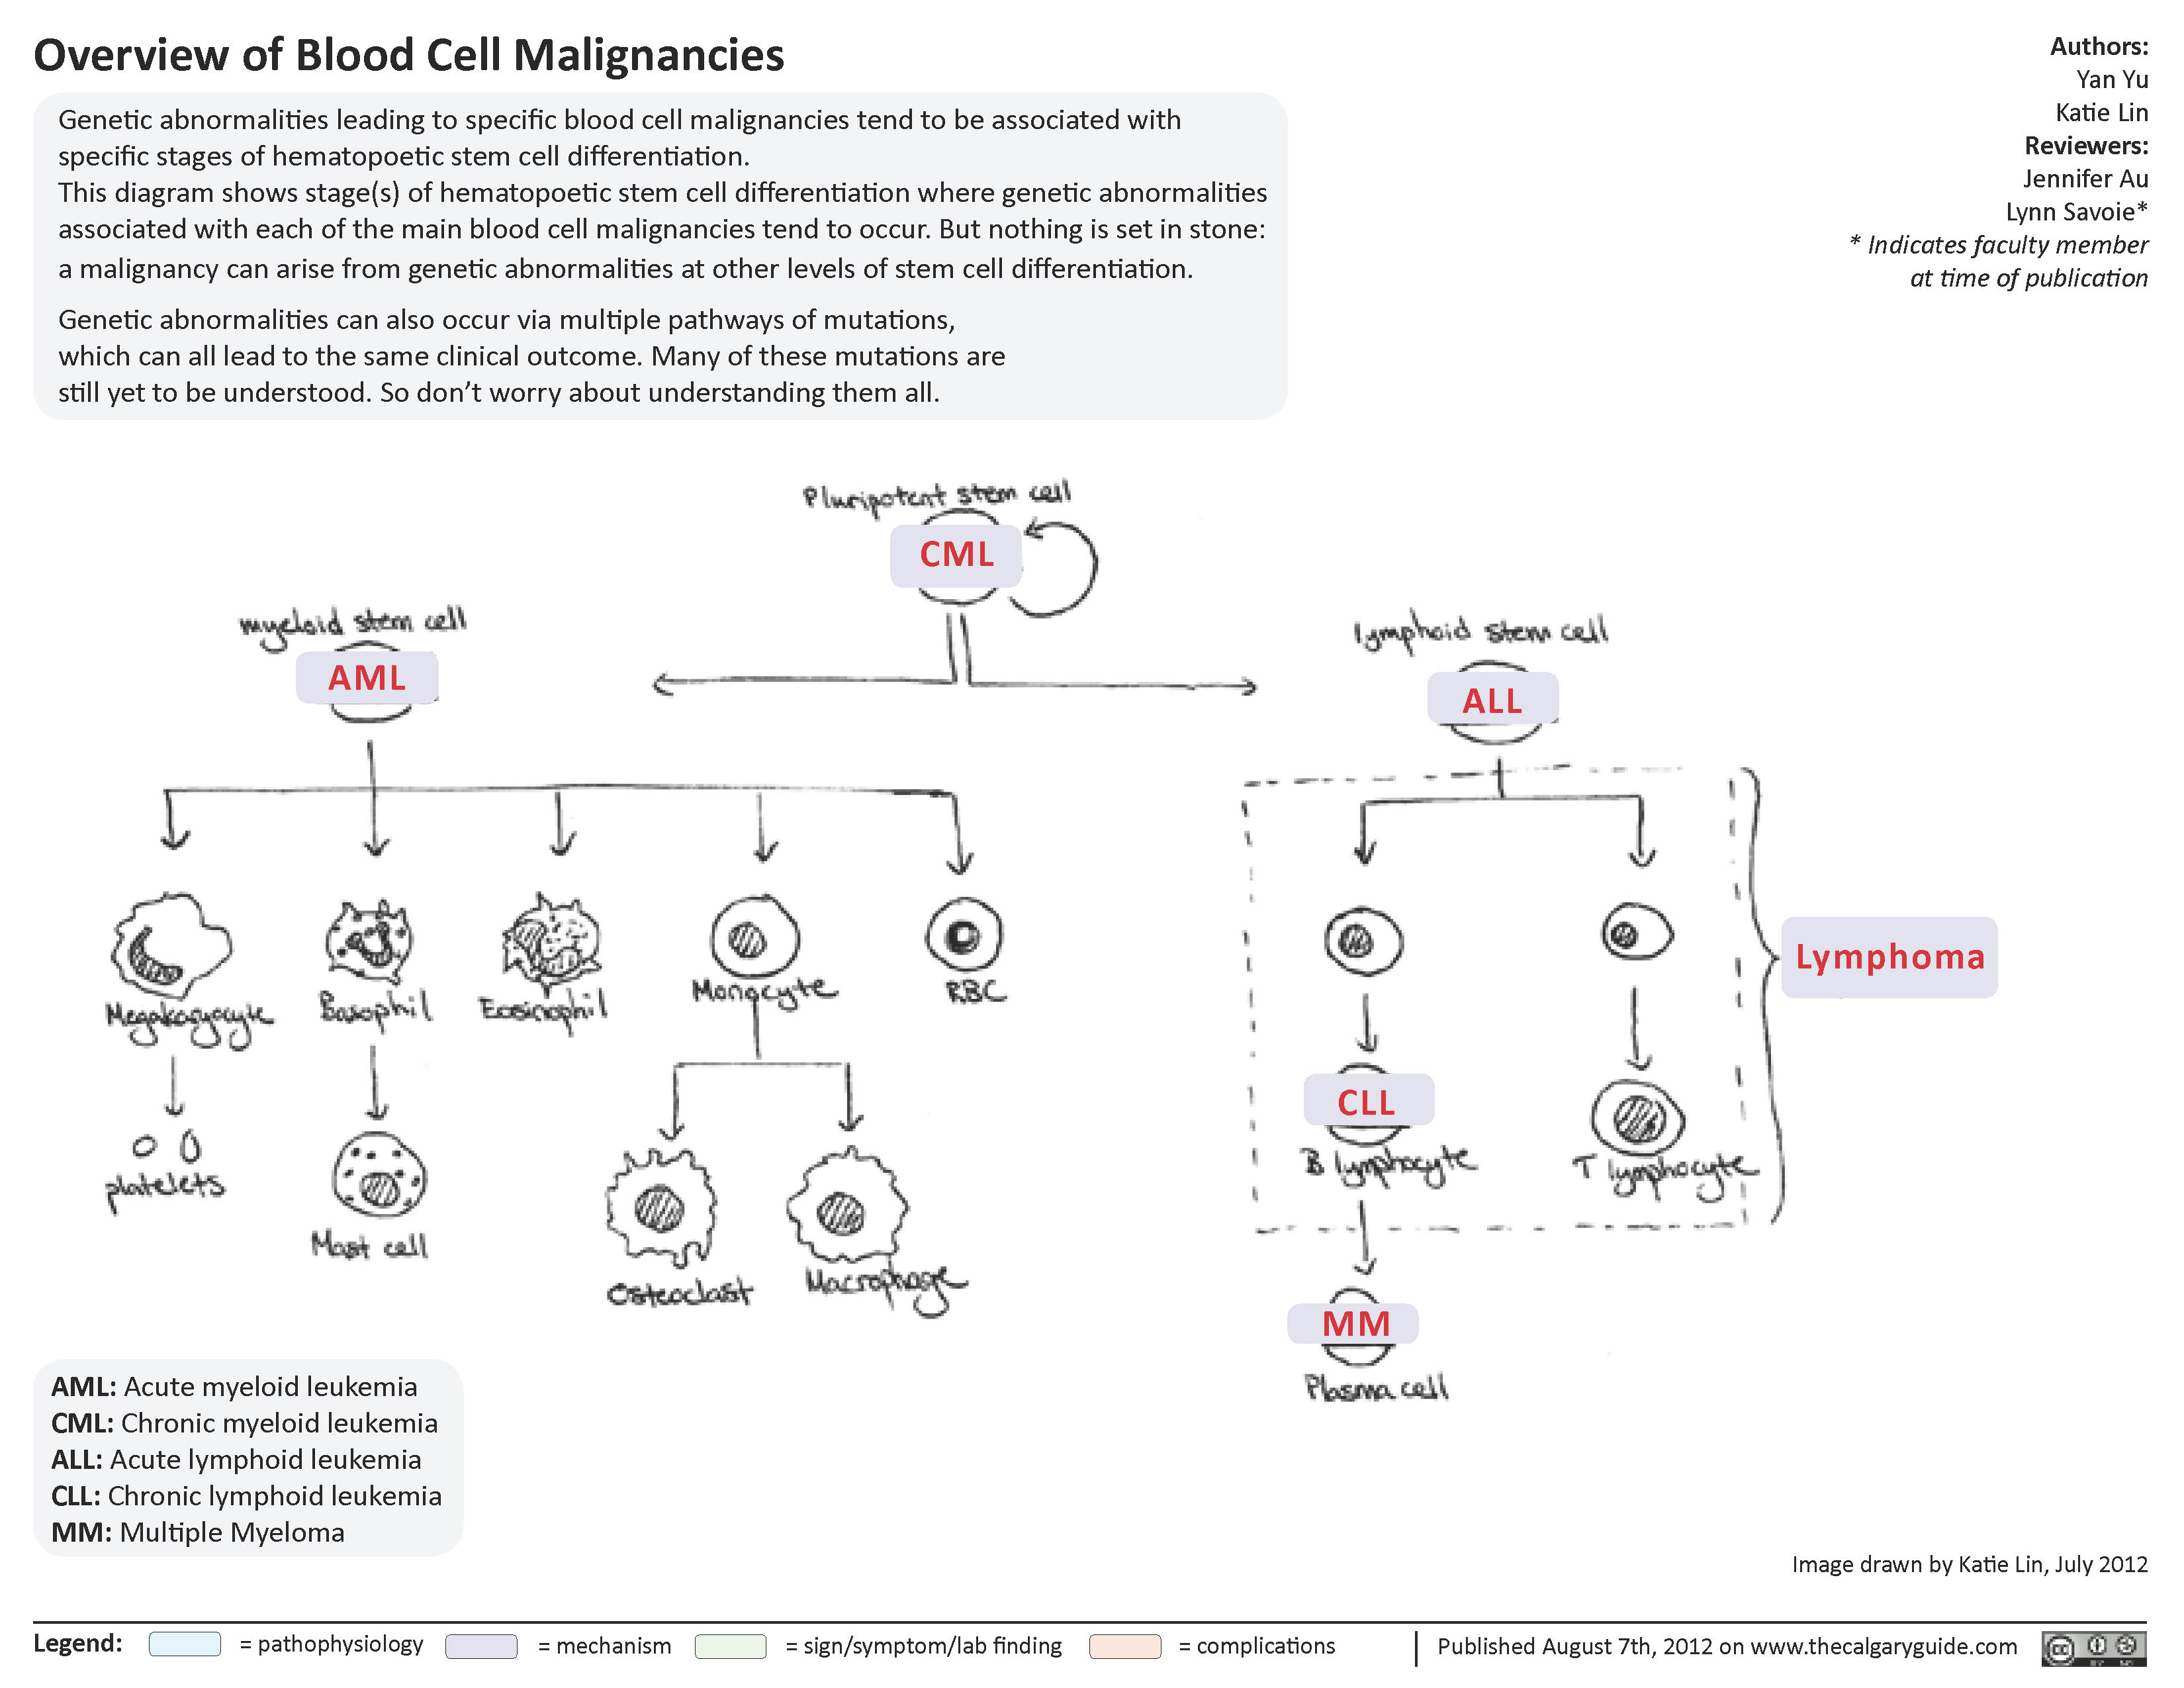 Overview of blood cell malignancies